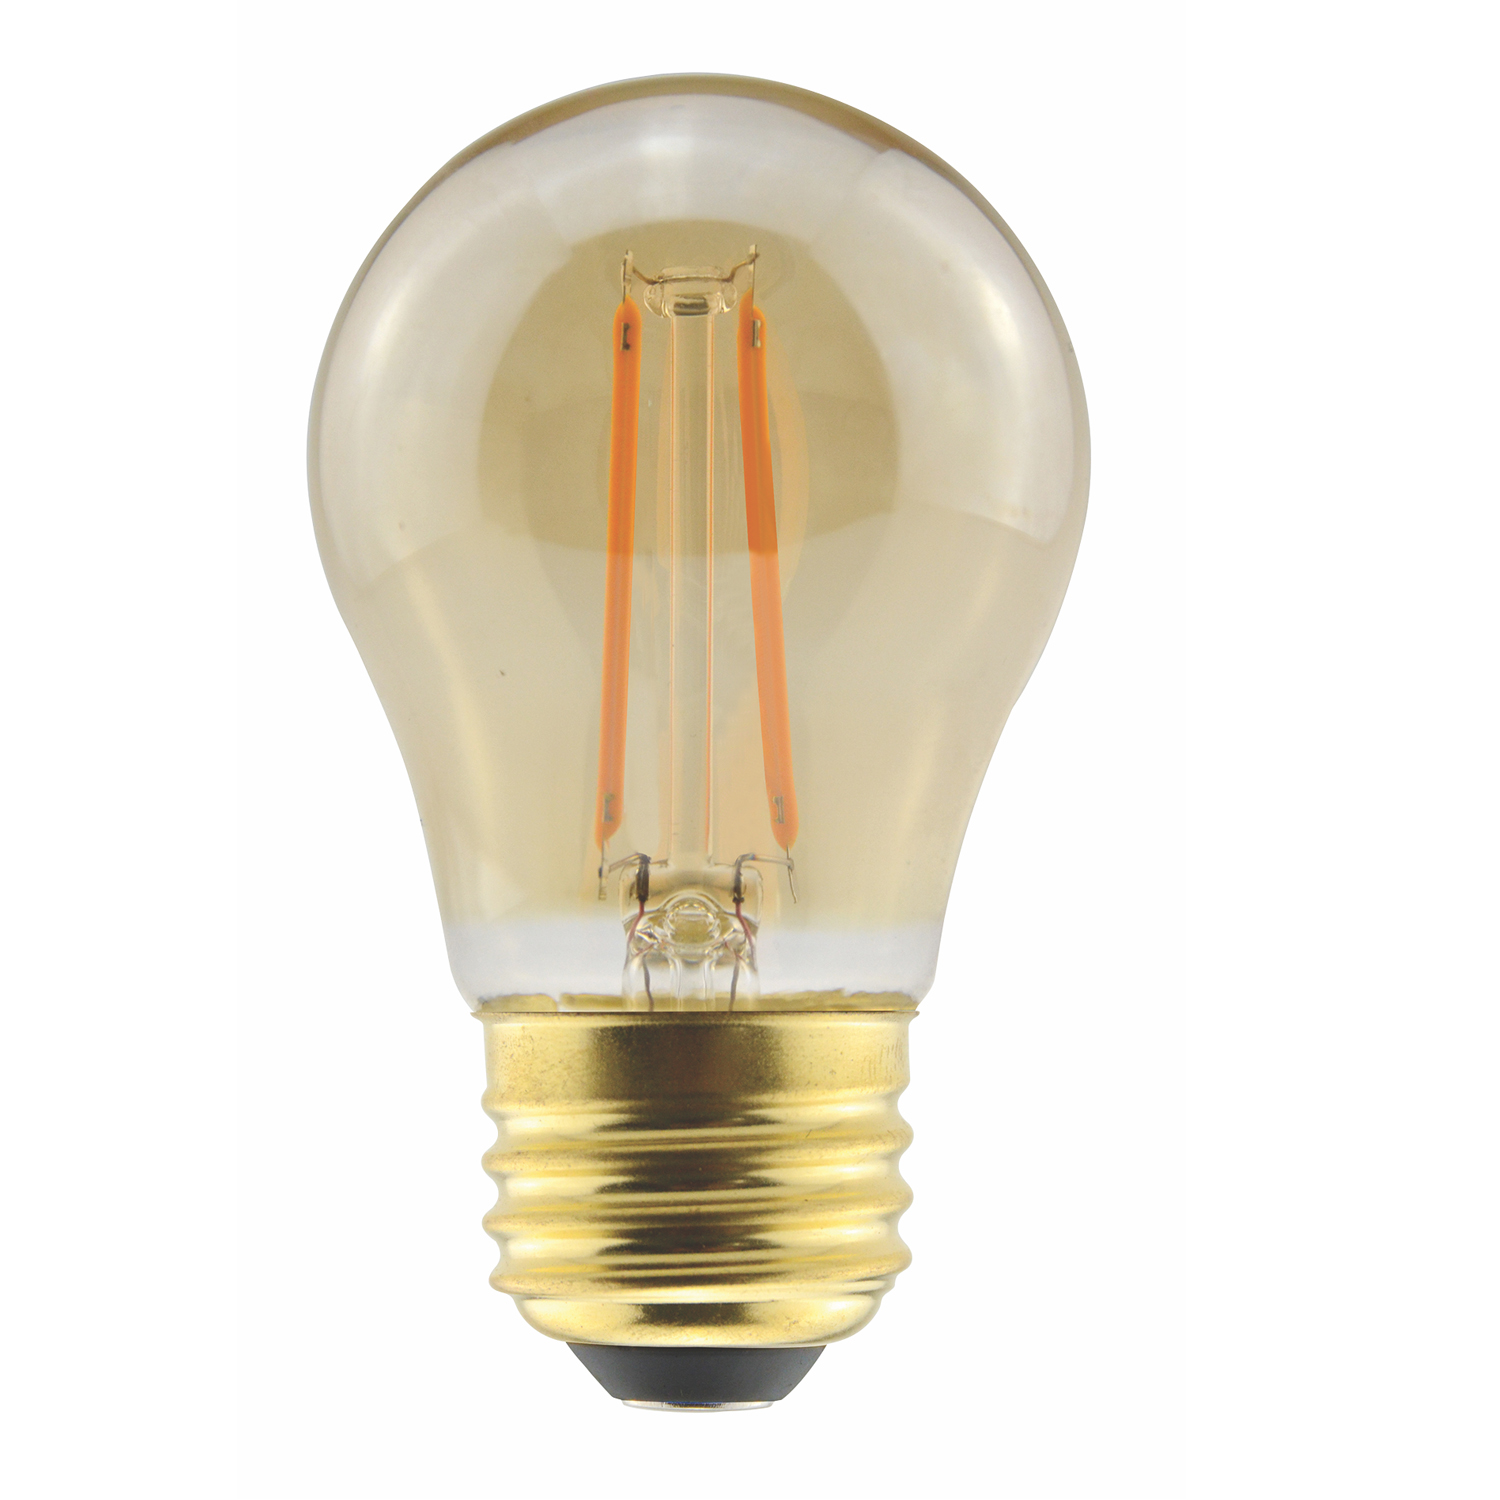 A15AMB5ANT/820/LED2 85036 A15 120V 6W 2000K E26 Amber ProLED